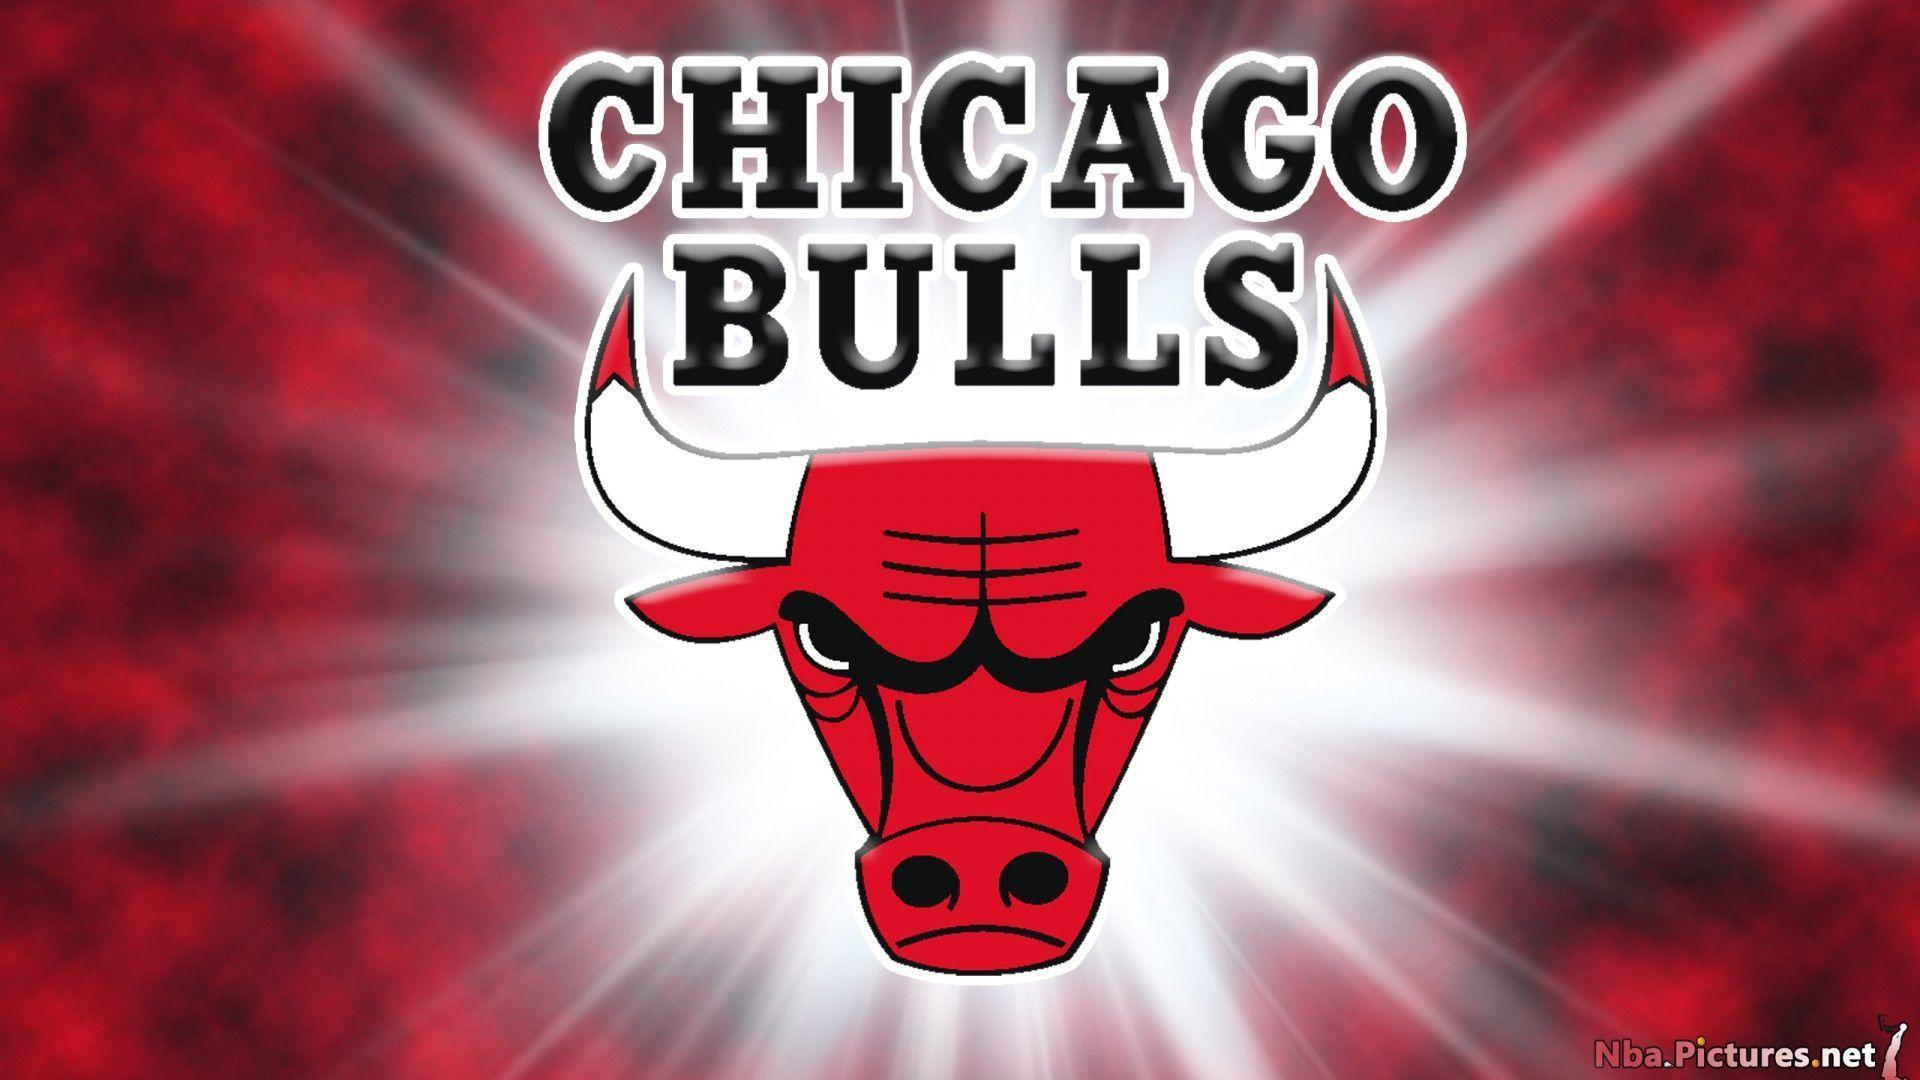 Chicago Bulls Logo 85 99256 Images HD Wallpapers| Wallfoy.com